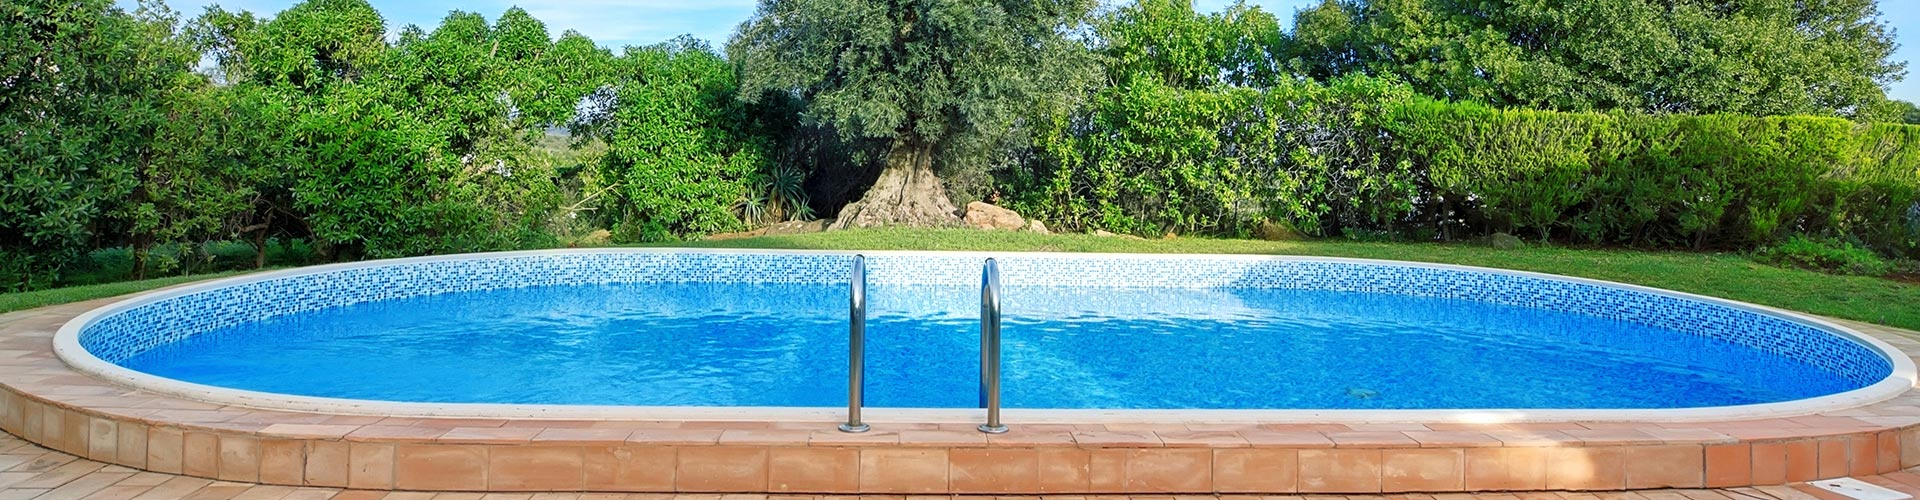 MCI Transformer manufacturers low voltage transformers for pools and spas.